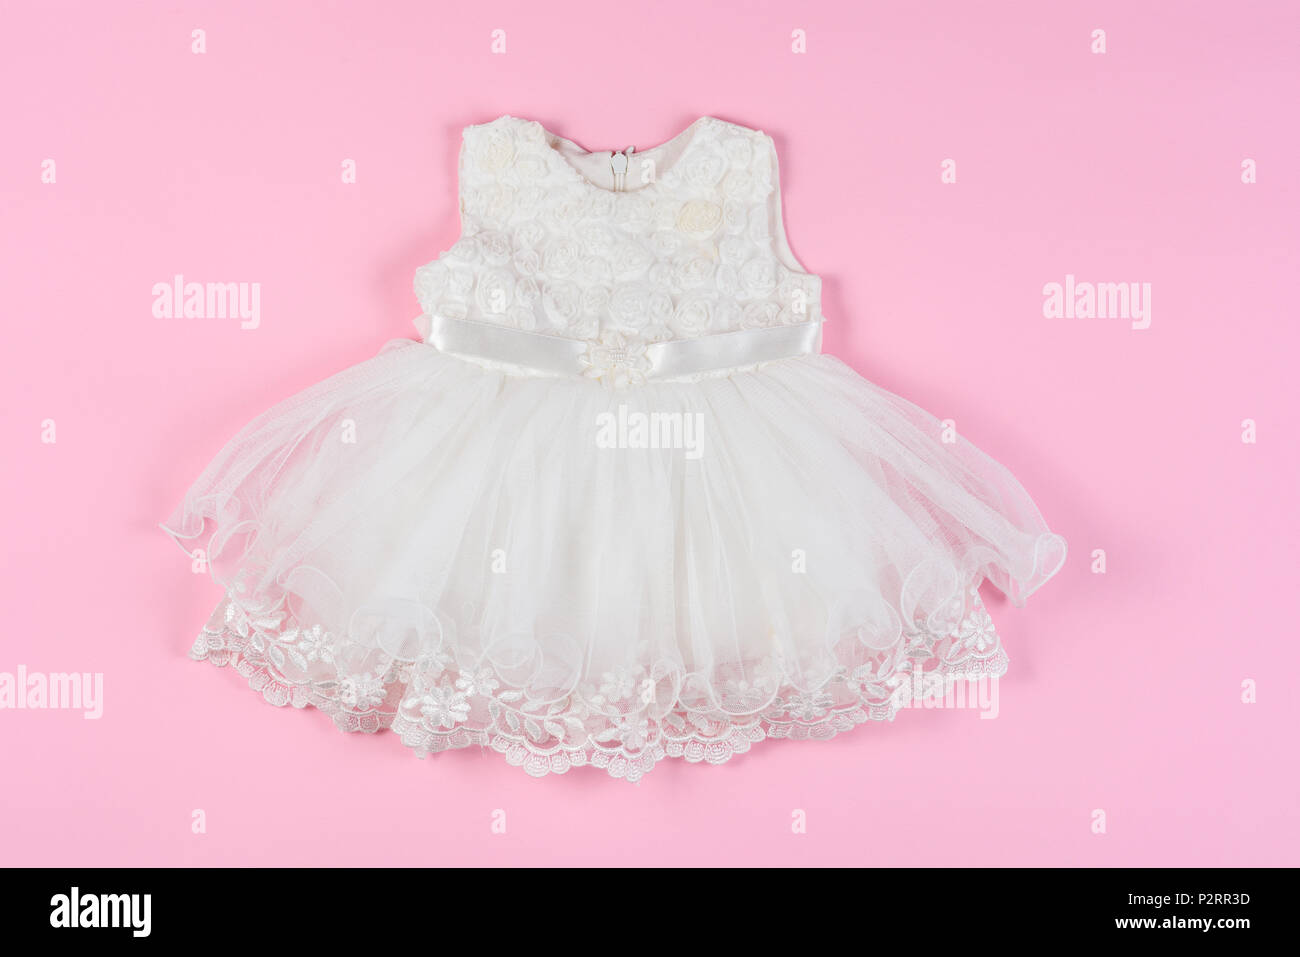 43d6e825599d White baby dress with flowers on a pink background. Concept of ...